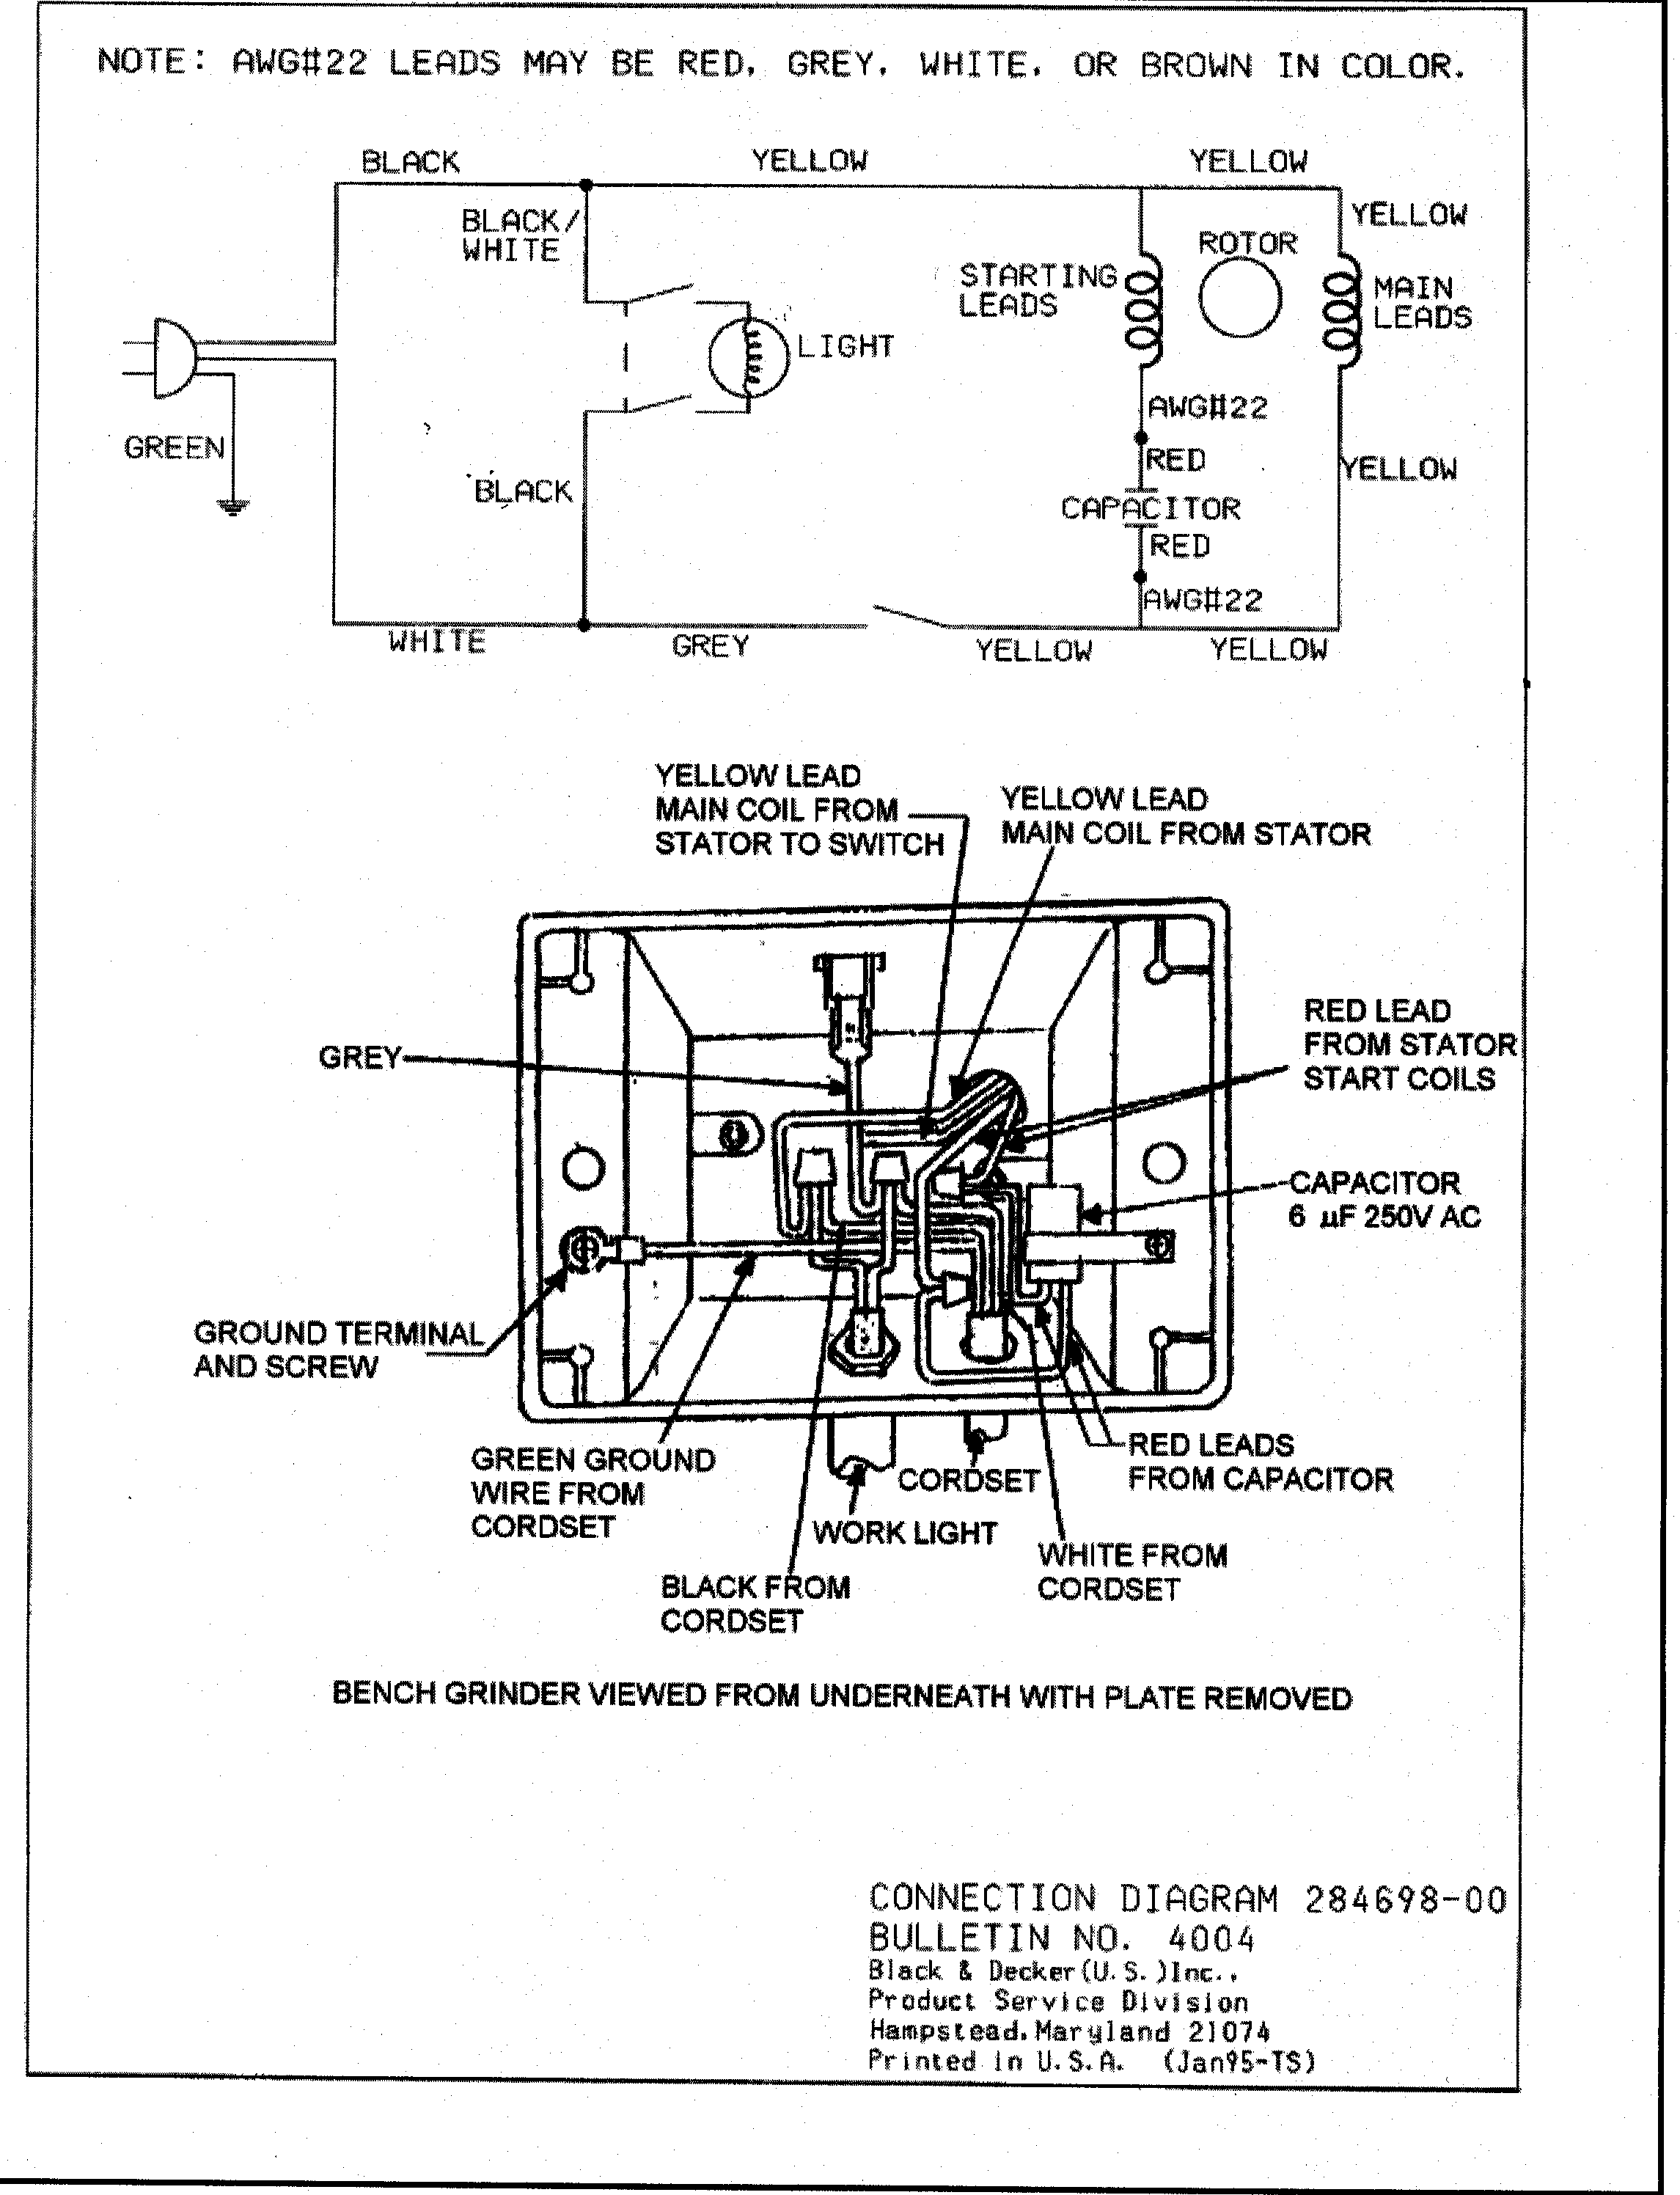 50024029 00002 bench grinder wiring diagram bench grinder wiring diagram at webbmarketing.co